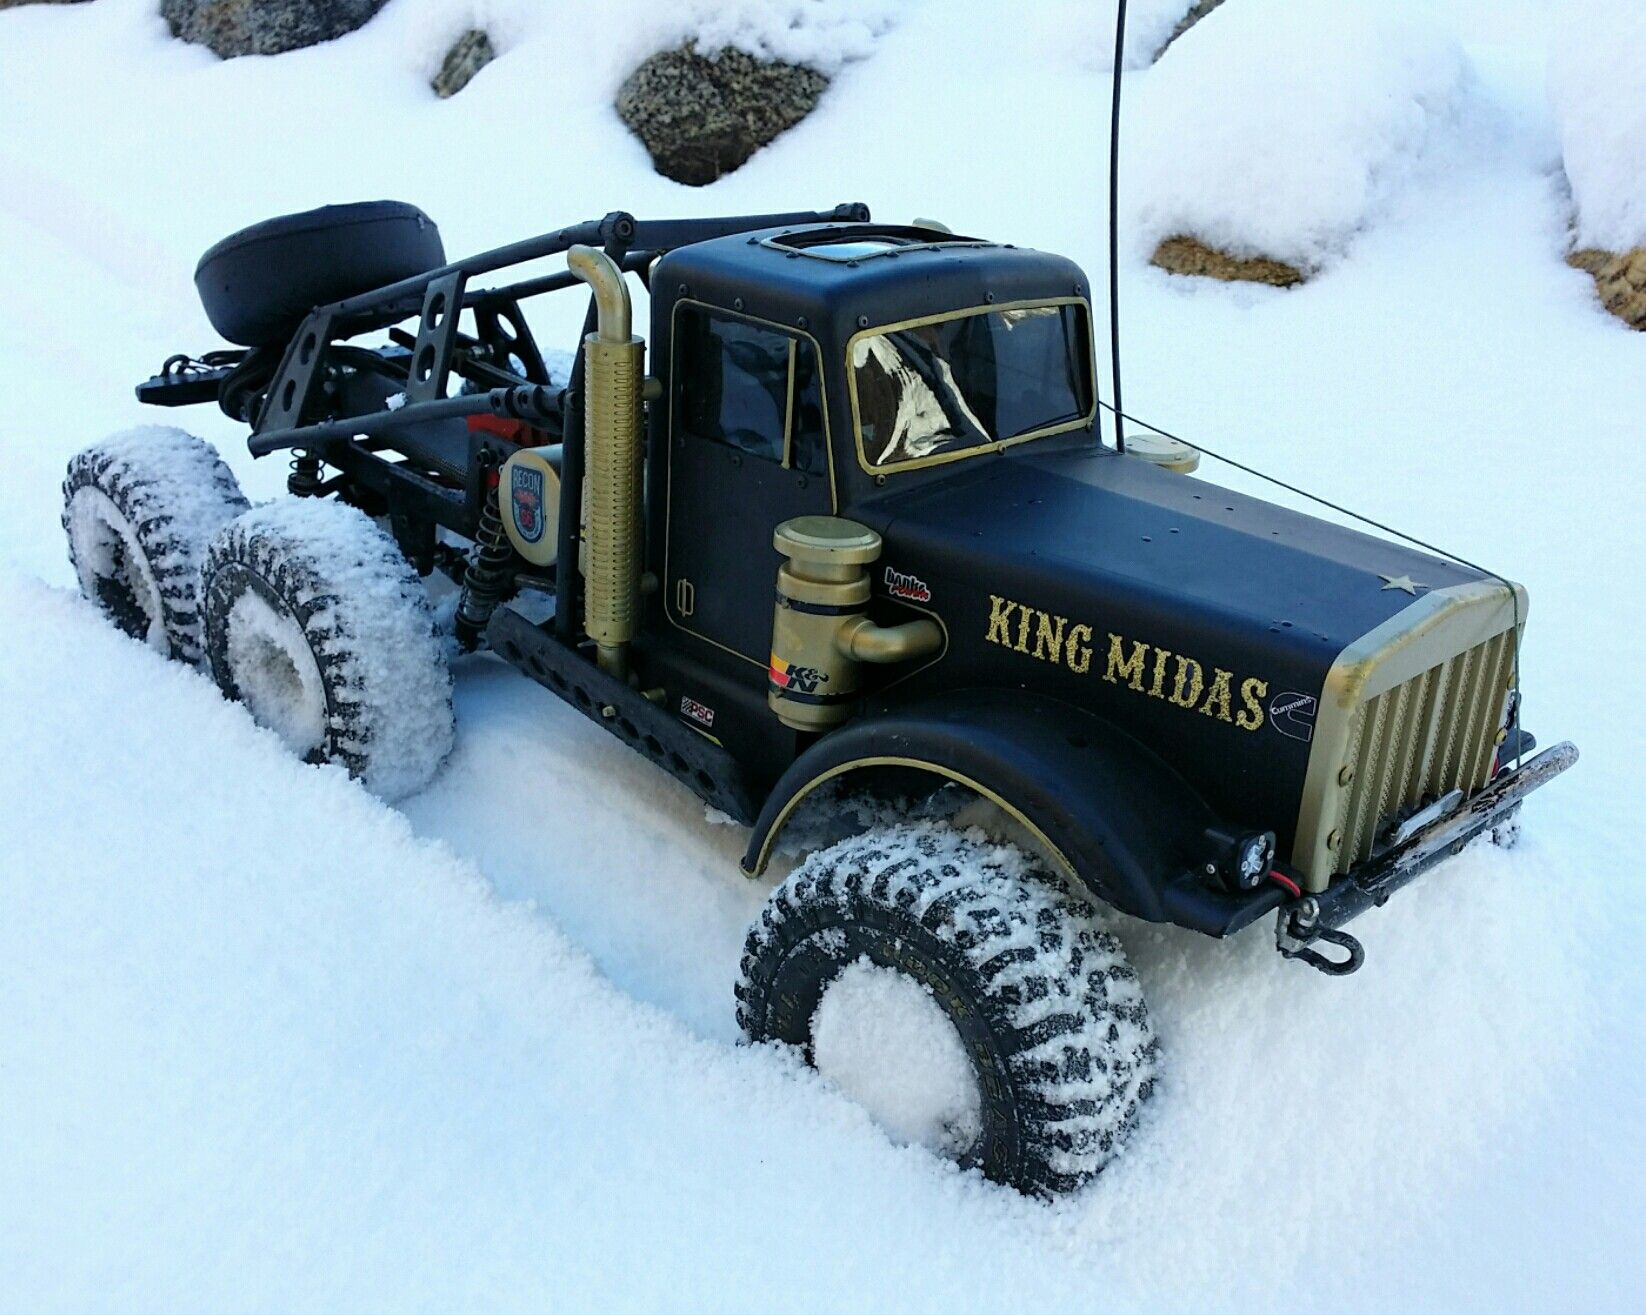 King Midas 6x6 out in the snow, Axial based, ToyZuki chassis